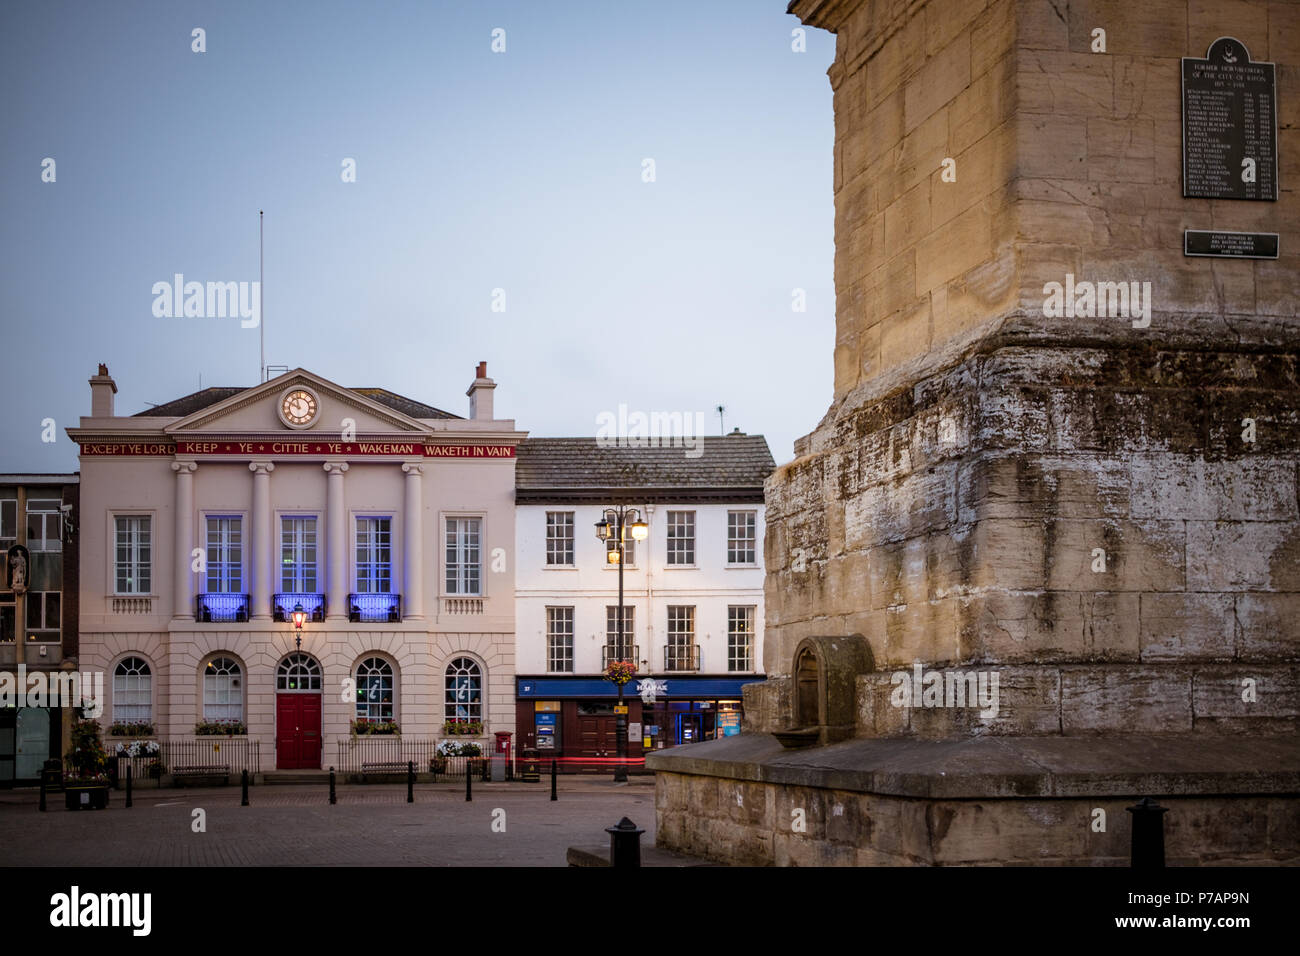 Ripon City Hall, Ripon, North Yorkshire, UK - 5 July 2018: The Council Offices in Ripon, North Yorkshire, UK, lit up in blue to celebrate the 70th birthday of the NHS. Caught Light Photography/Alamy Live News - Stock Image